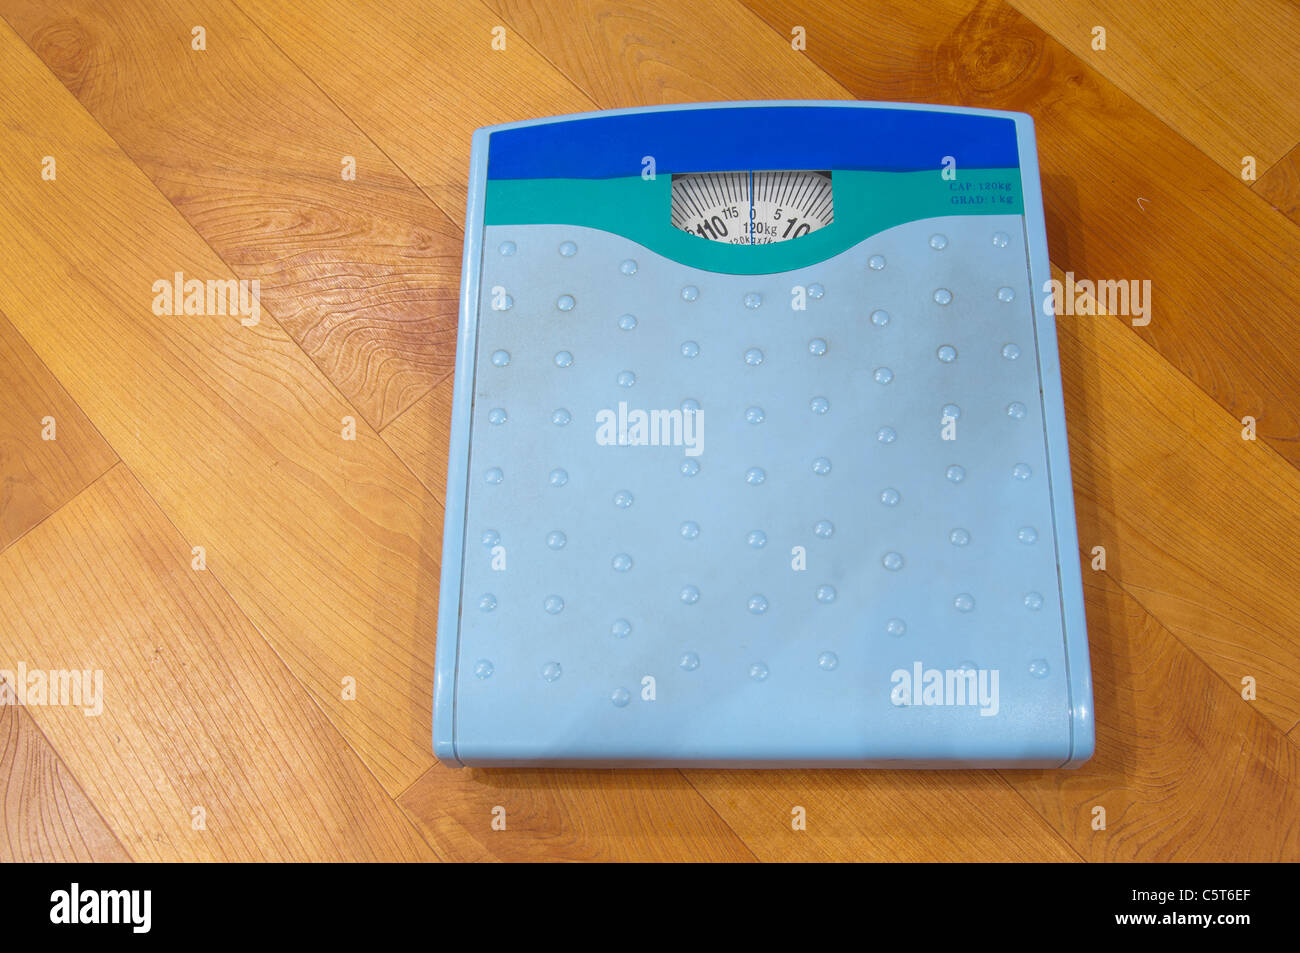 Weighing scales on floor - Stock Image